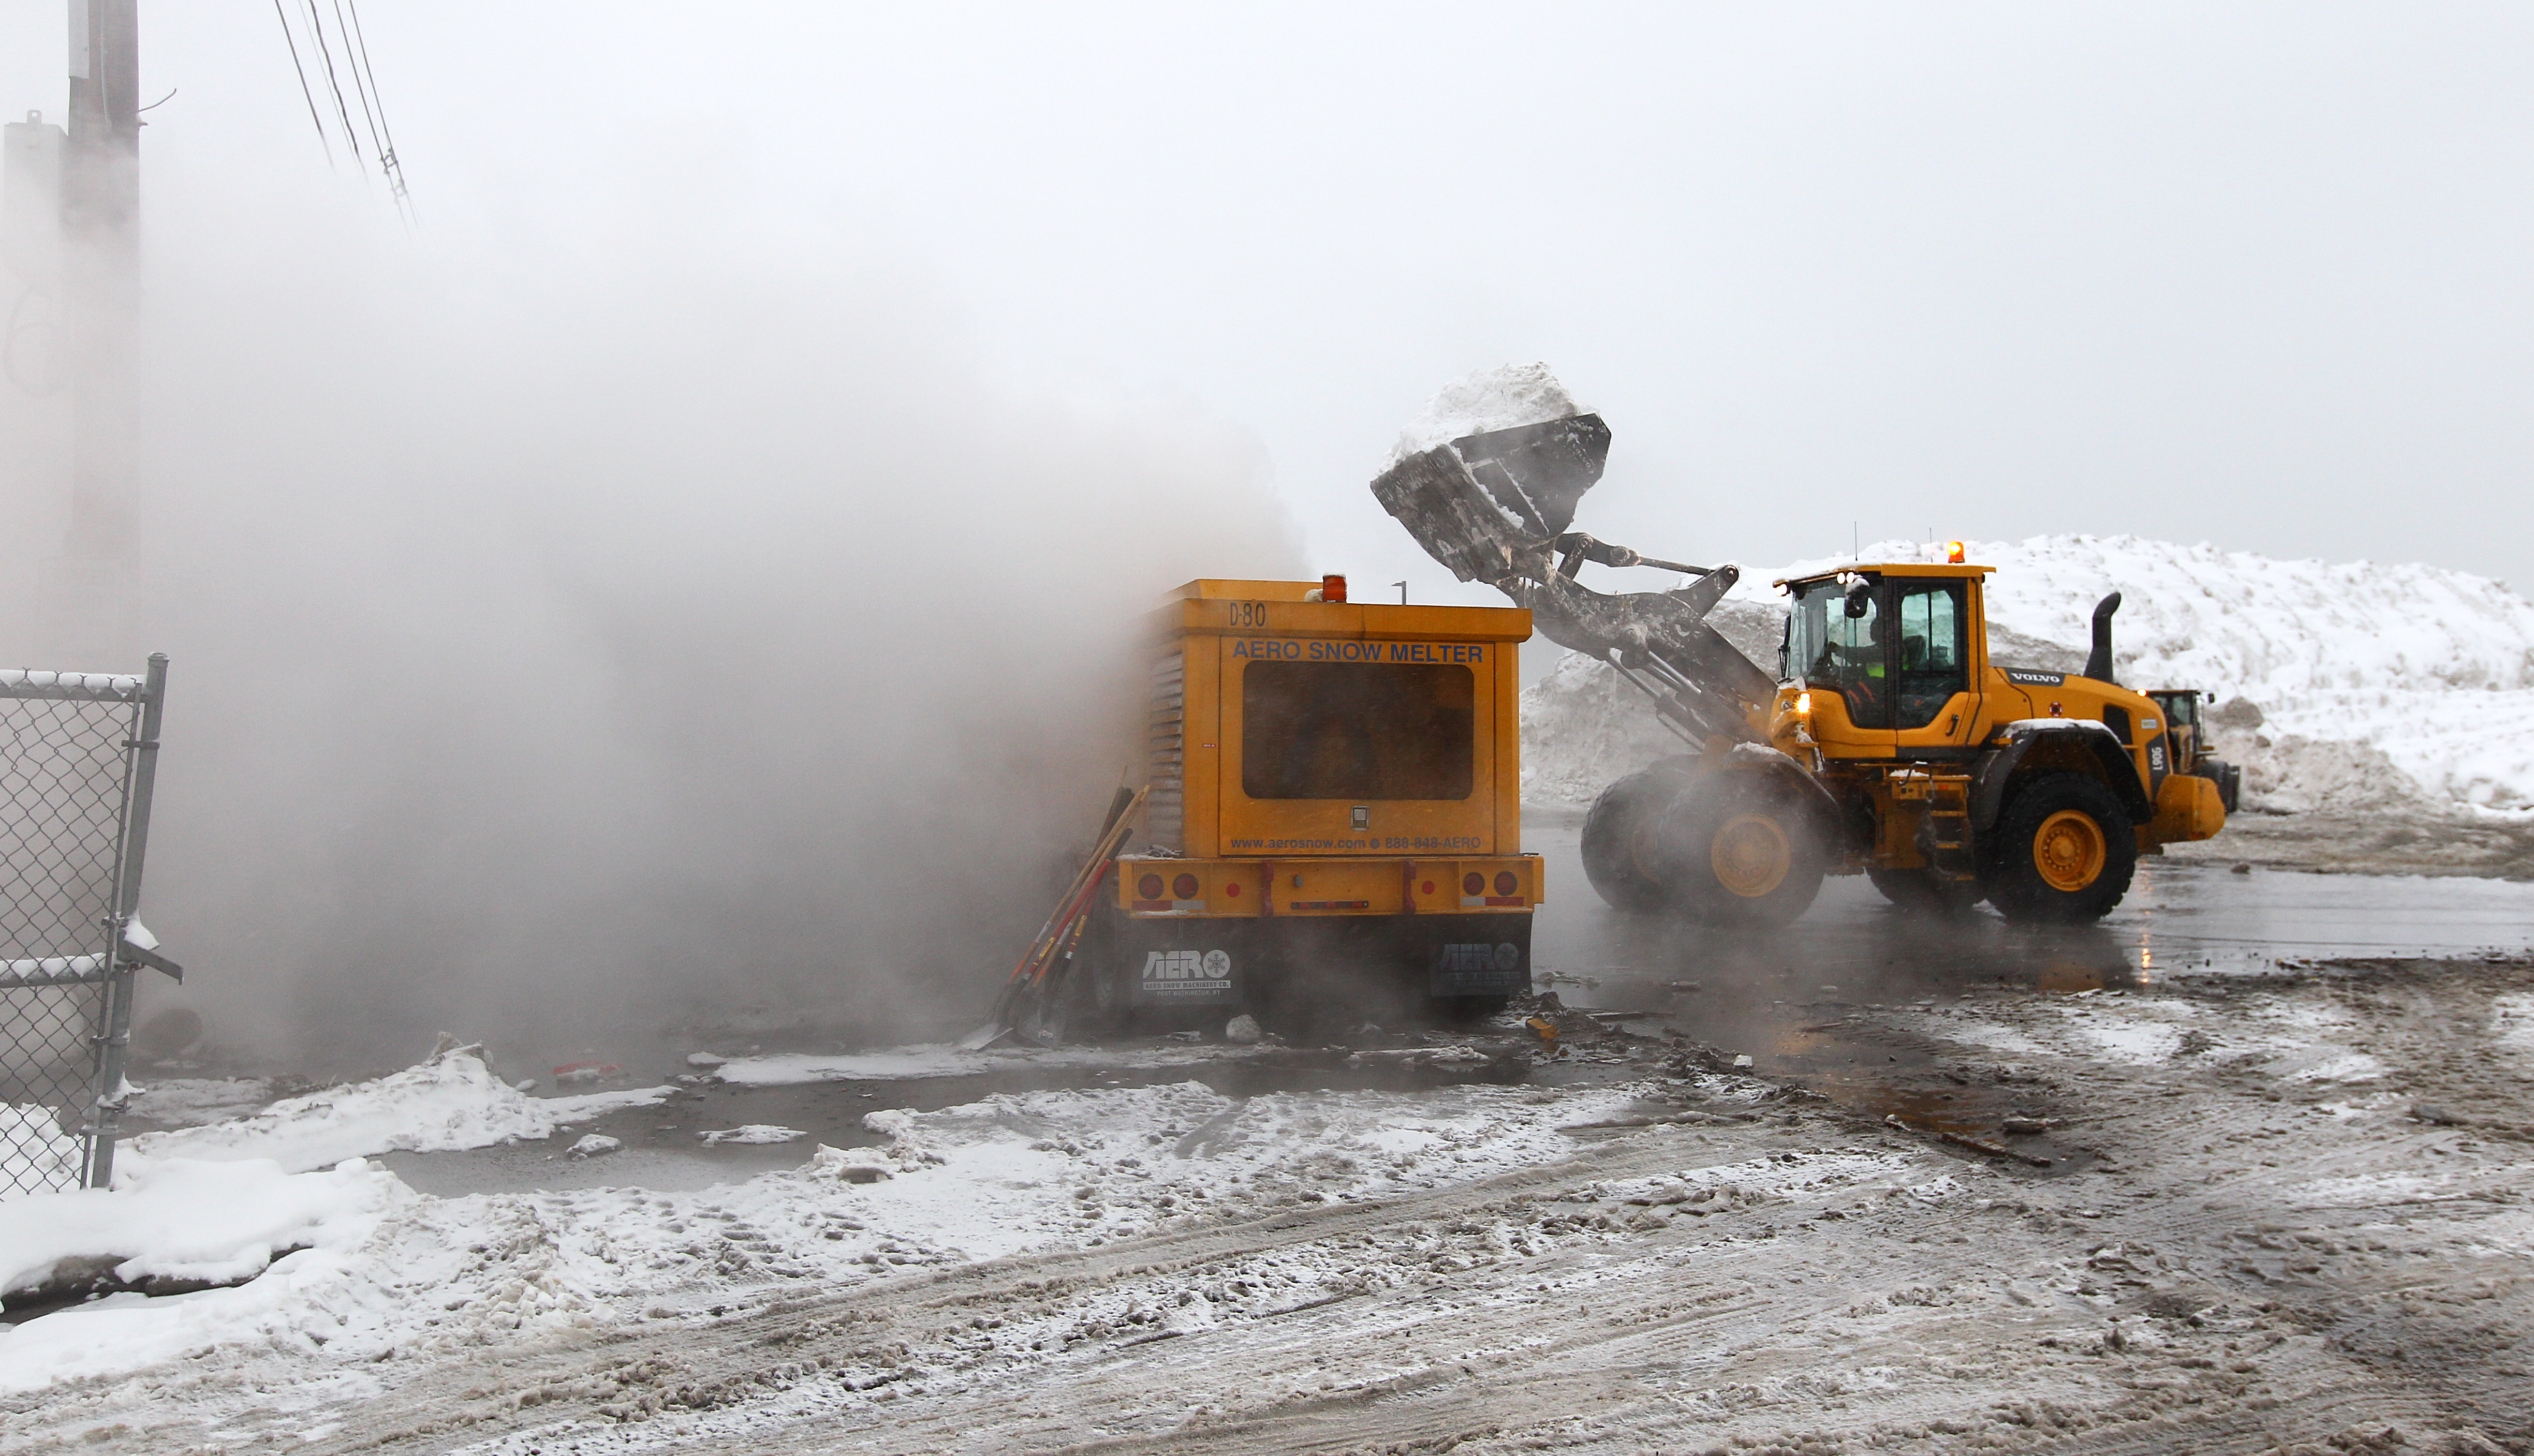 Crews use an Aero Snow Melter to dispatch mounds of snow at the Marine Industrial Park snow farm on Feb. 8, 2015.